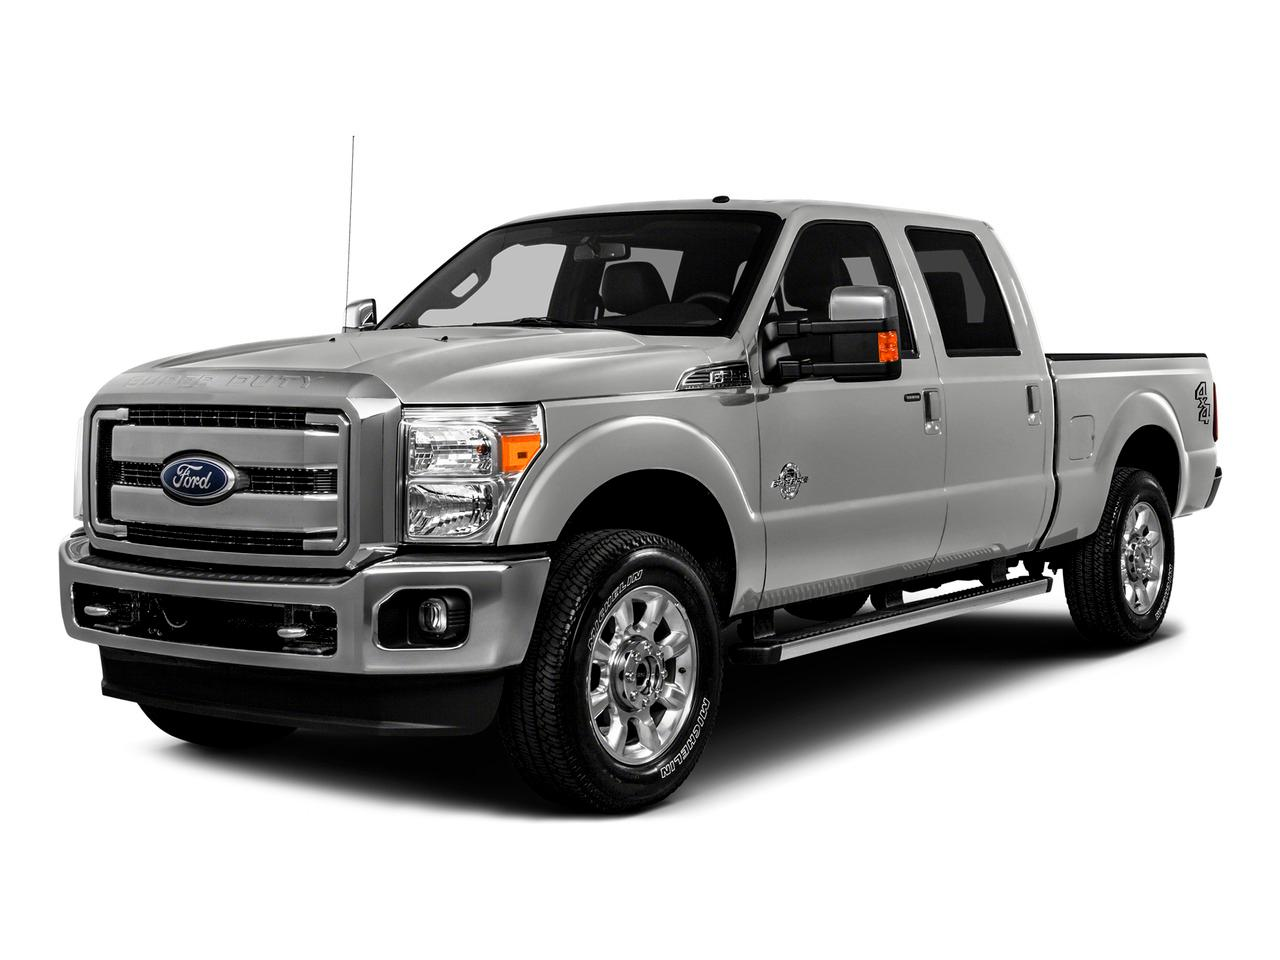 2016 Ford Super Duty F-250 SRW Vehicle Photo in San Antonio, TX 78257